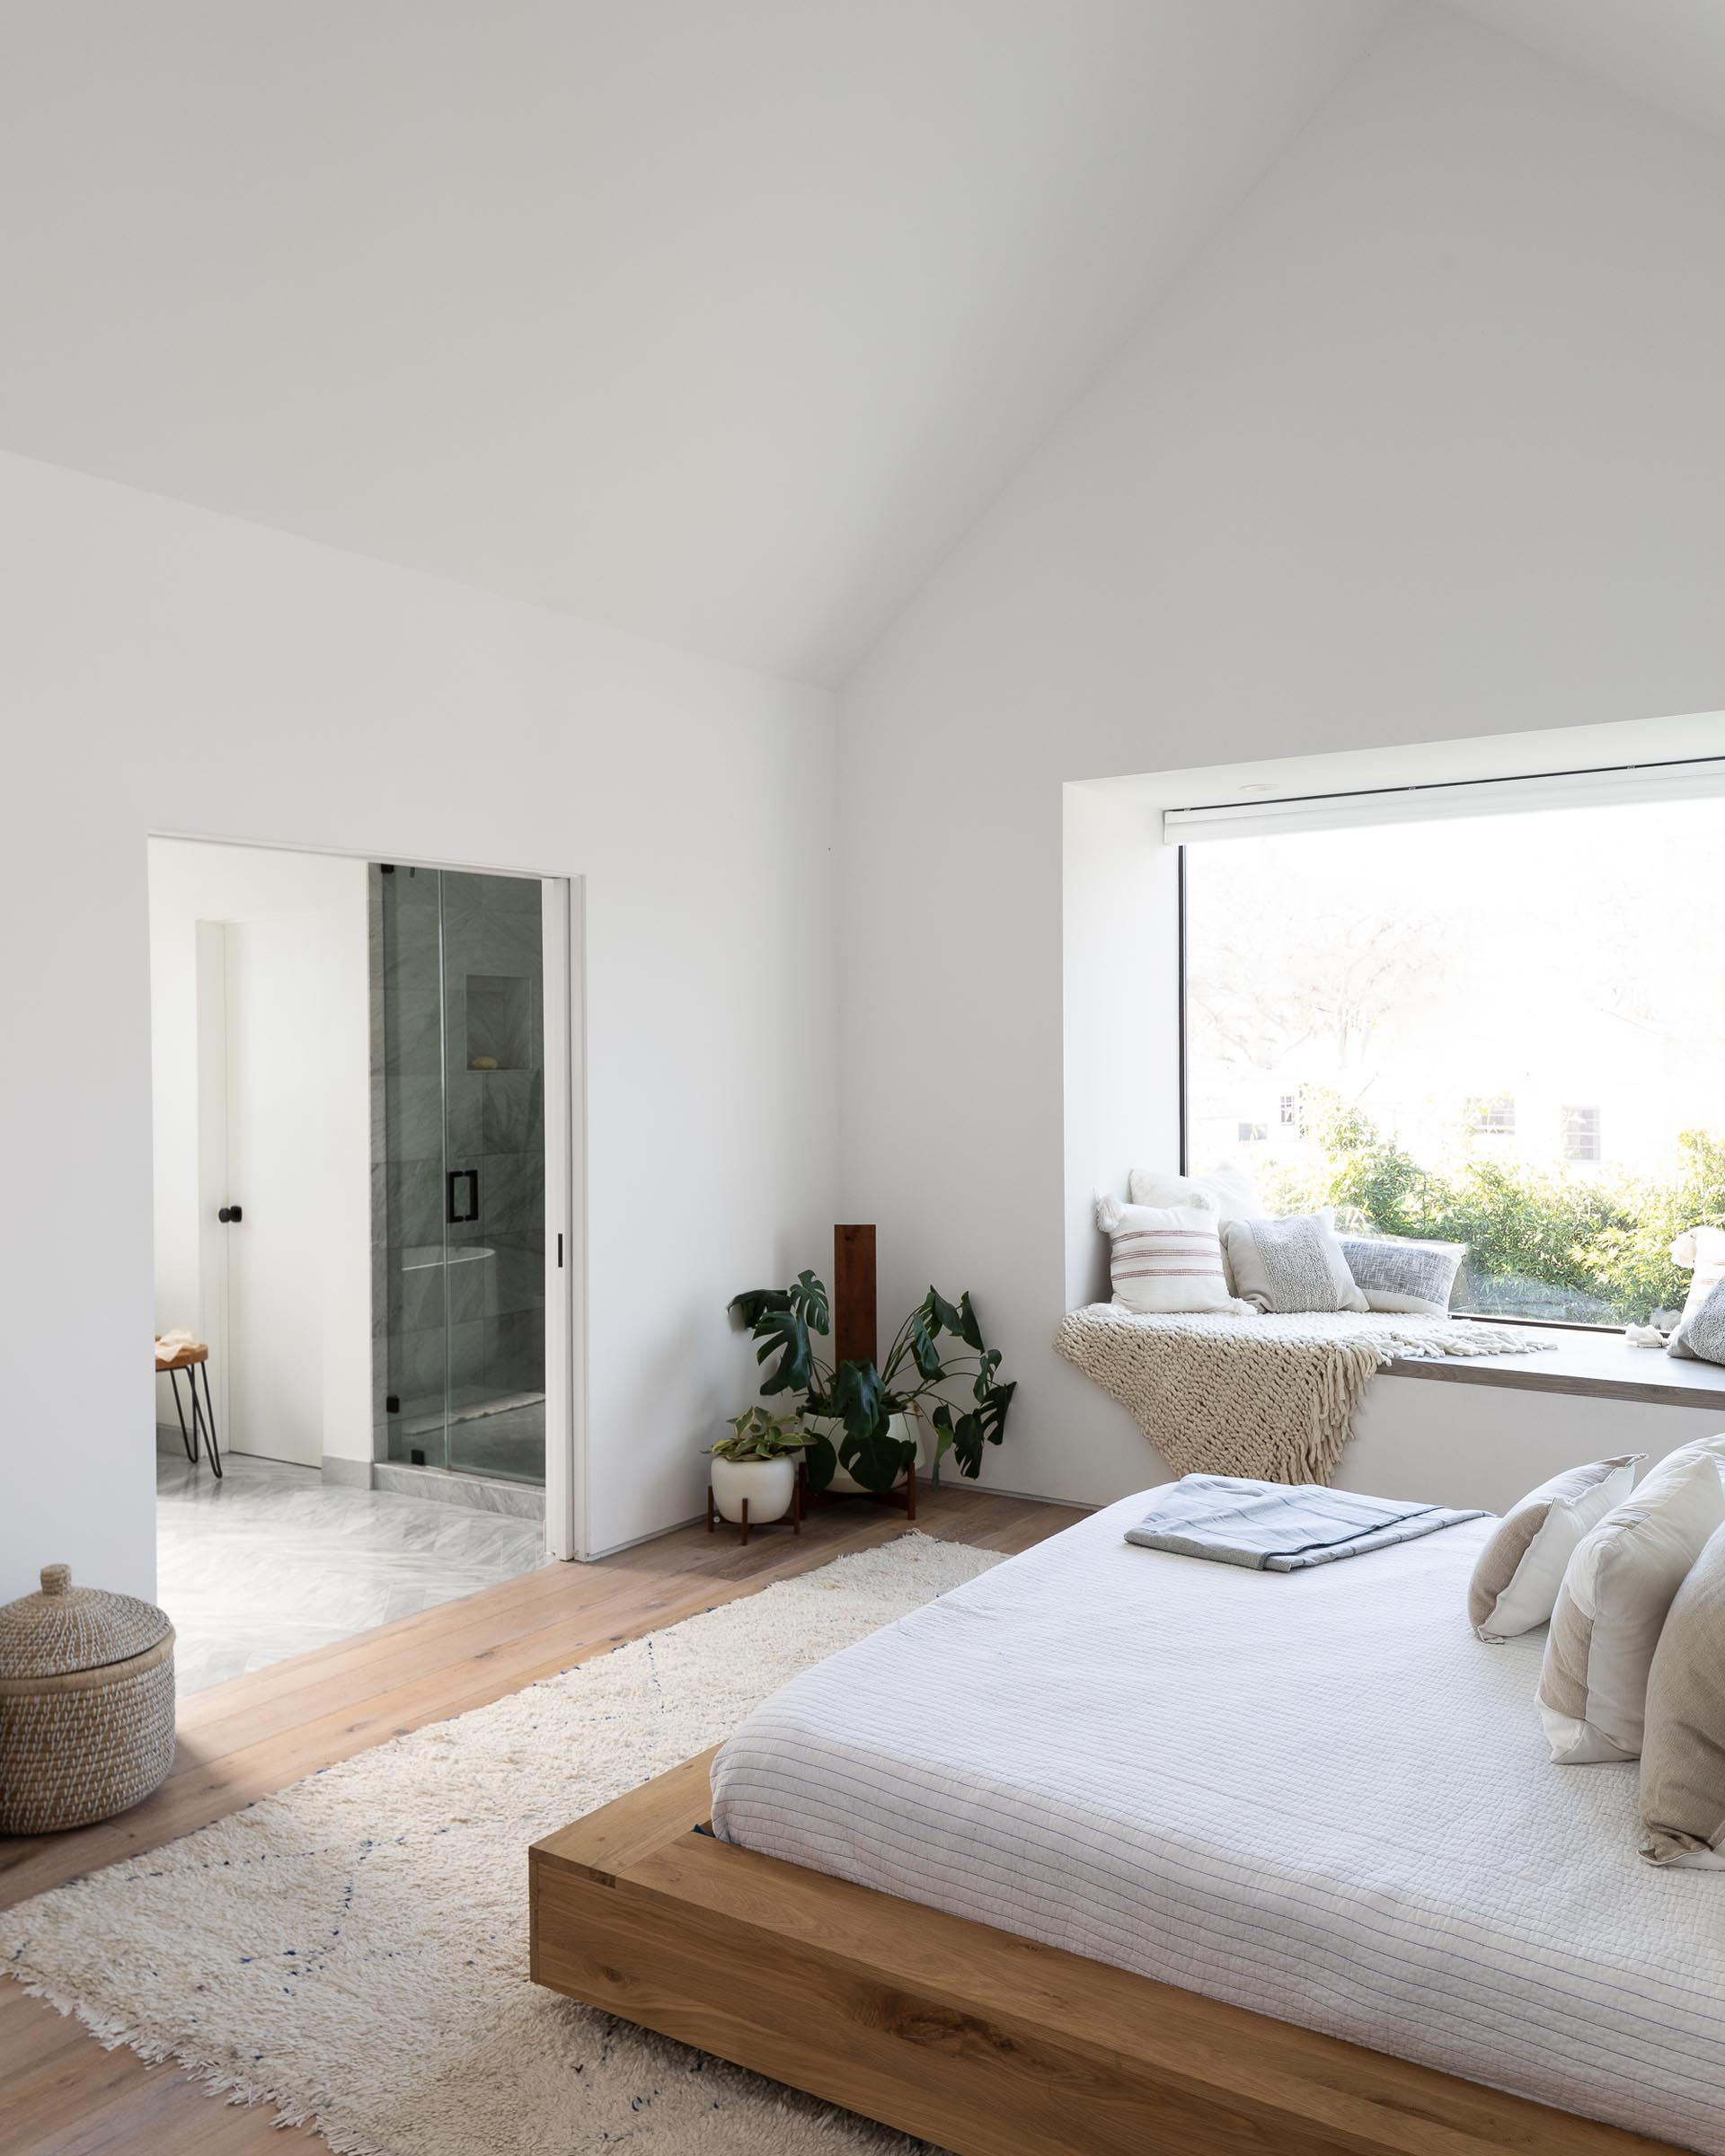 In this modern bedroom, a wood bed frame and side tables add warmth to the space, while a window seat creates a cozy place to read a book and take in the views of the yard.